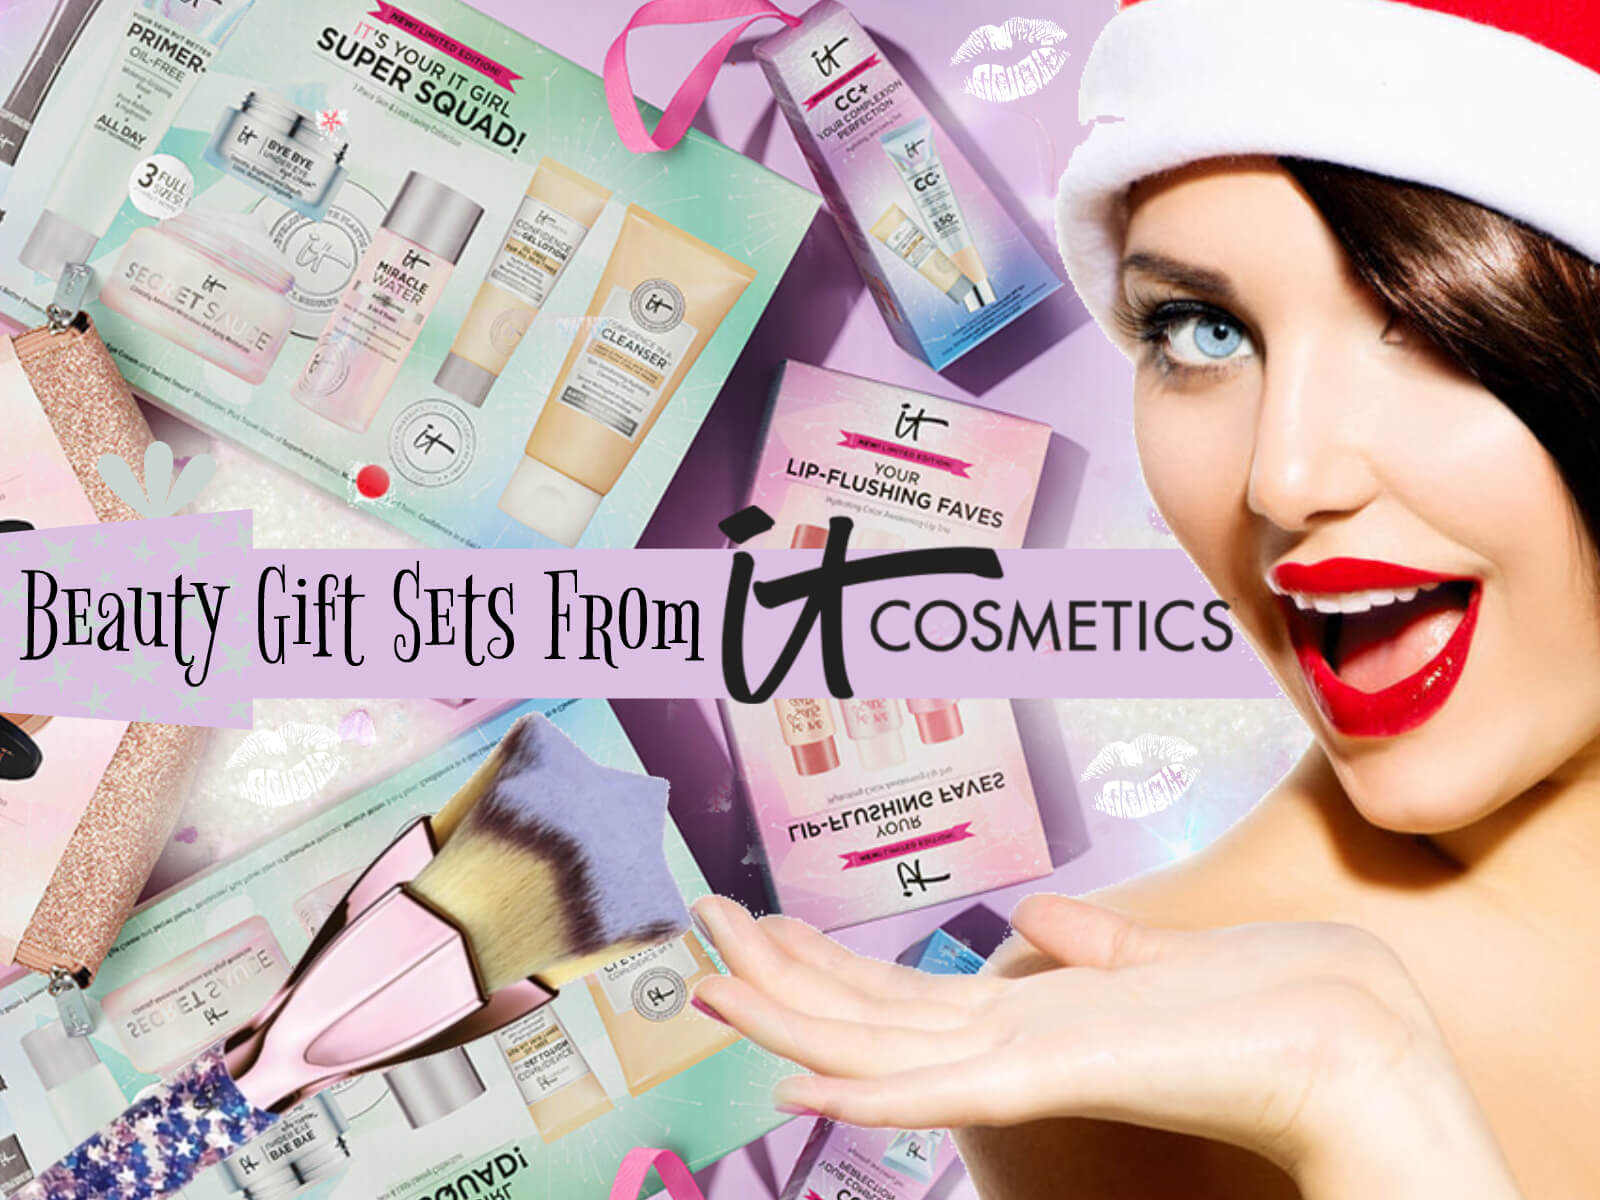 Itcosmetics holiday gift sets by top beauty blogger Barbies Beauty Bits